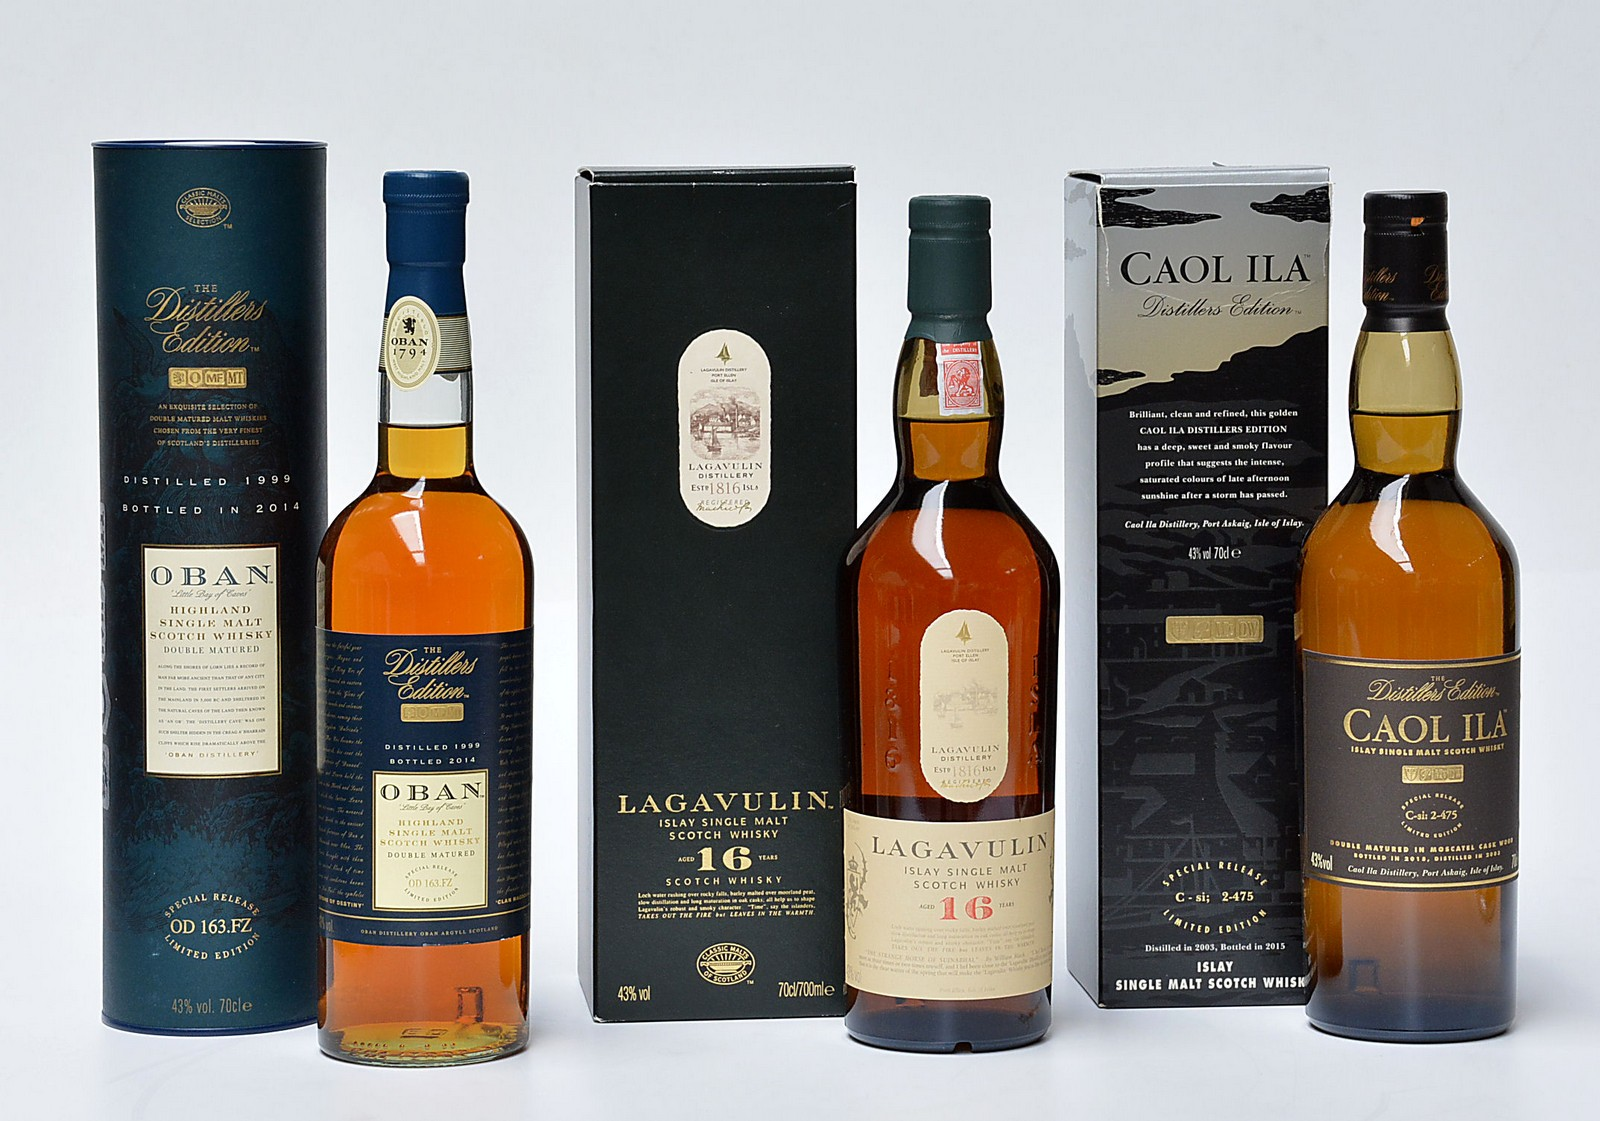 1 fl. Lagavulin, 1 fl. Caol Ila og 1 fl. Oban Single Malt Scotch Whisky - 1 fl. Lagavulin, Islay Single Malt Scotch Whisky, 16 Years, 43%. 1 fl. Caol Ila, Islay Single Malt Whisky,Double matured in Moscatel cask wood, 43%. 1 fl. Oban, Highland Single Malt Scotch Whisky, Double matured, 43%. Alle med original emballage